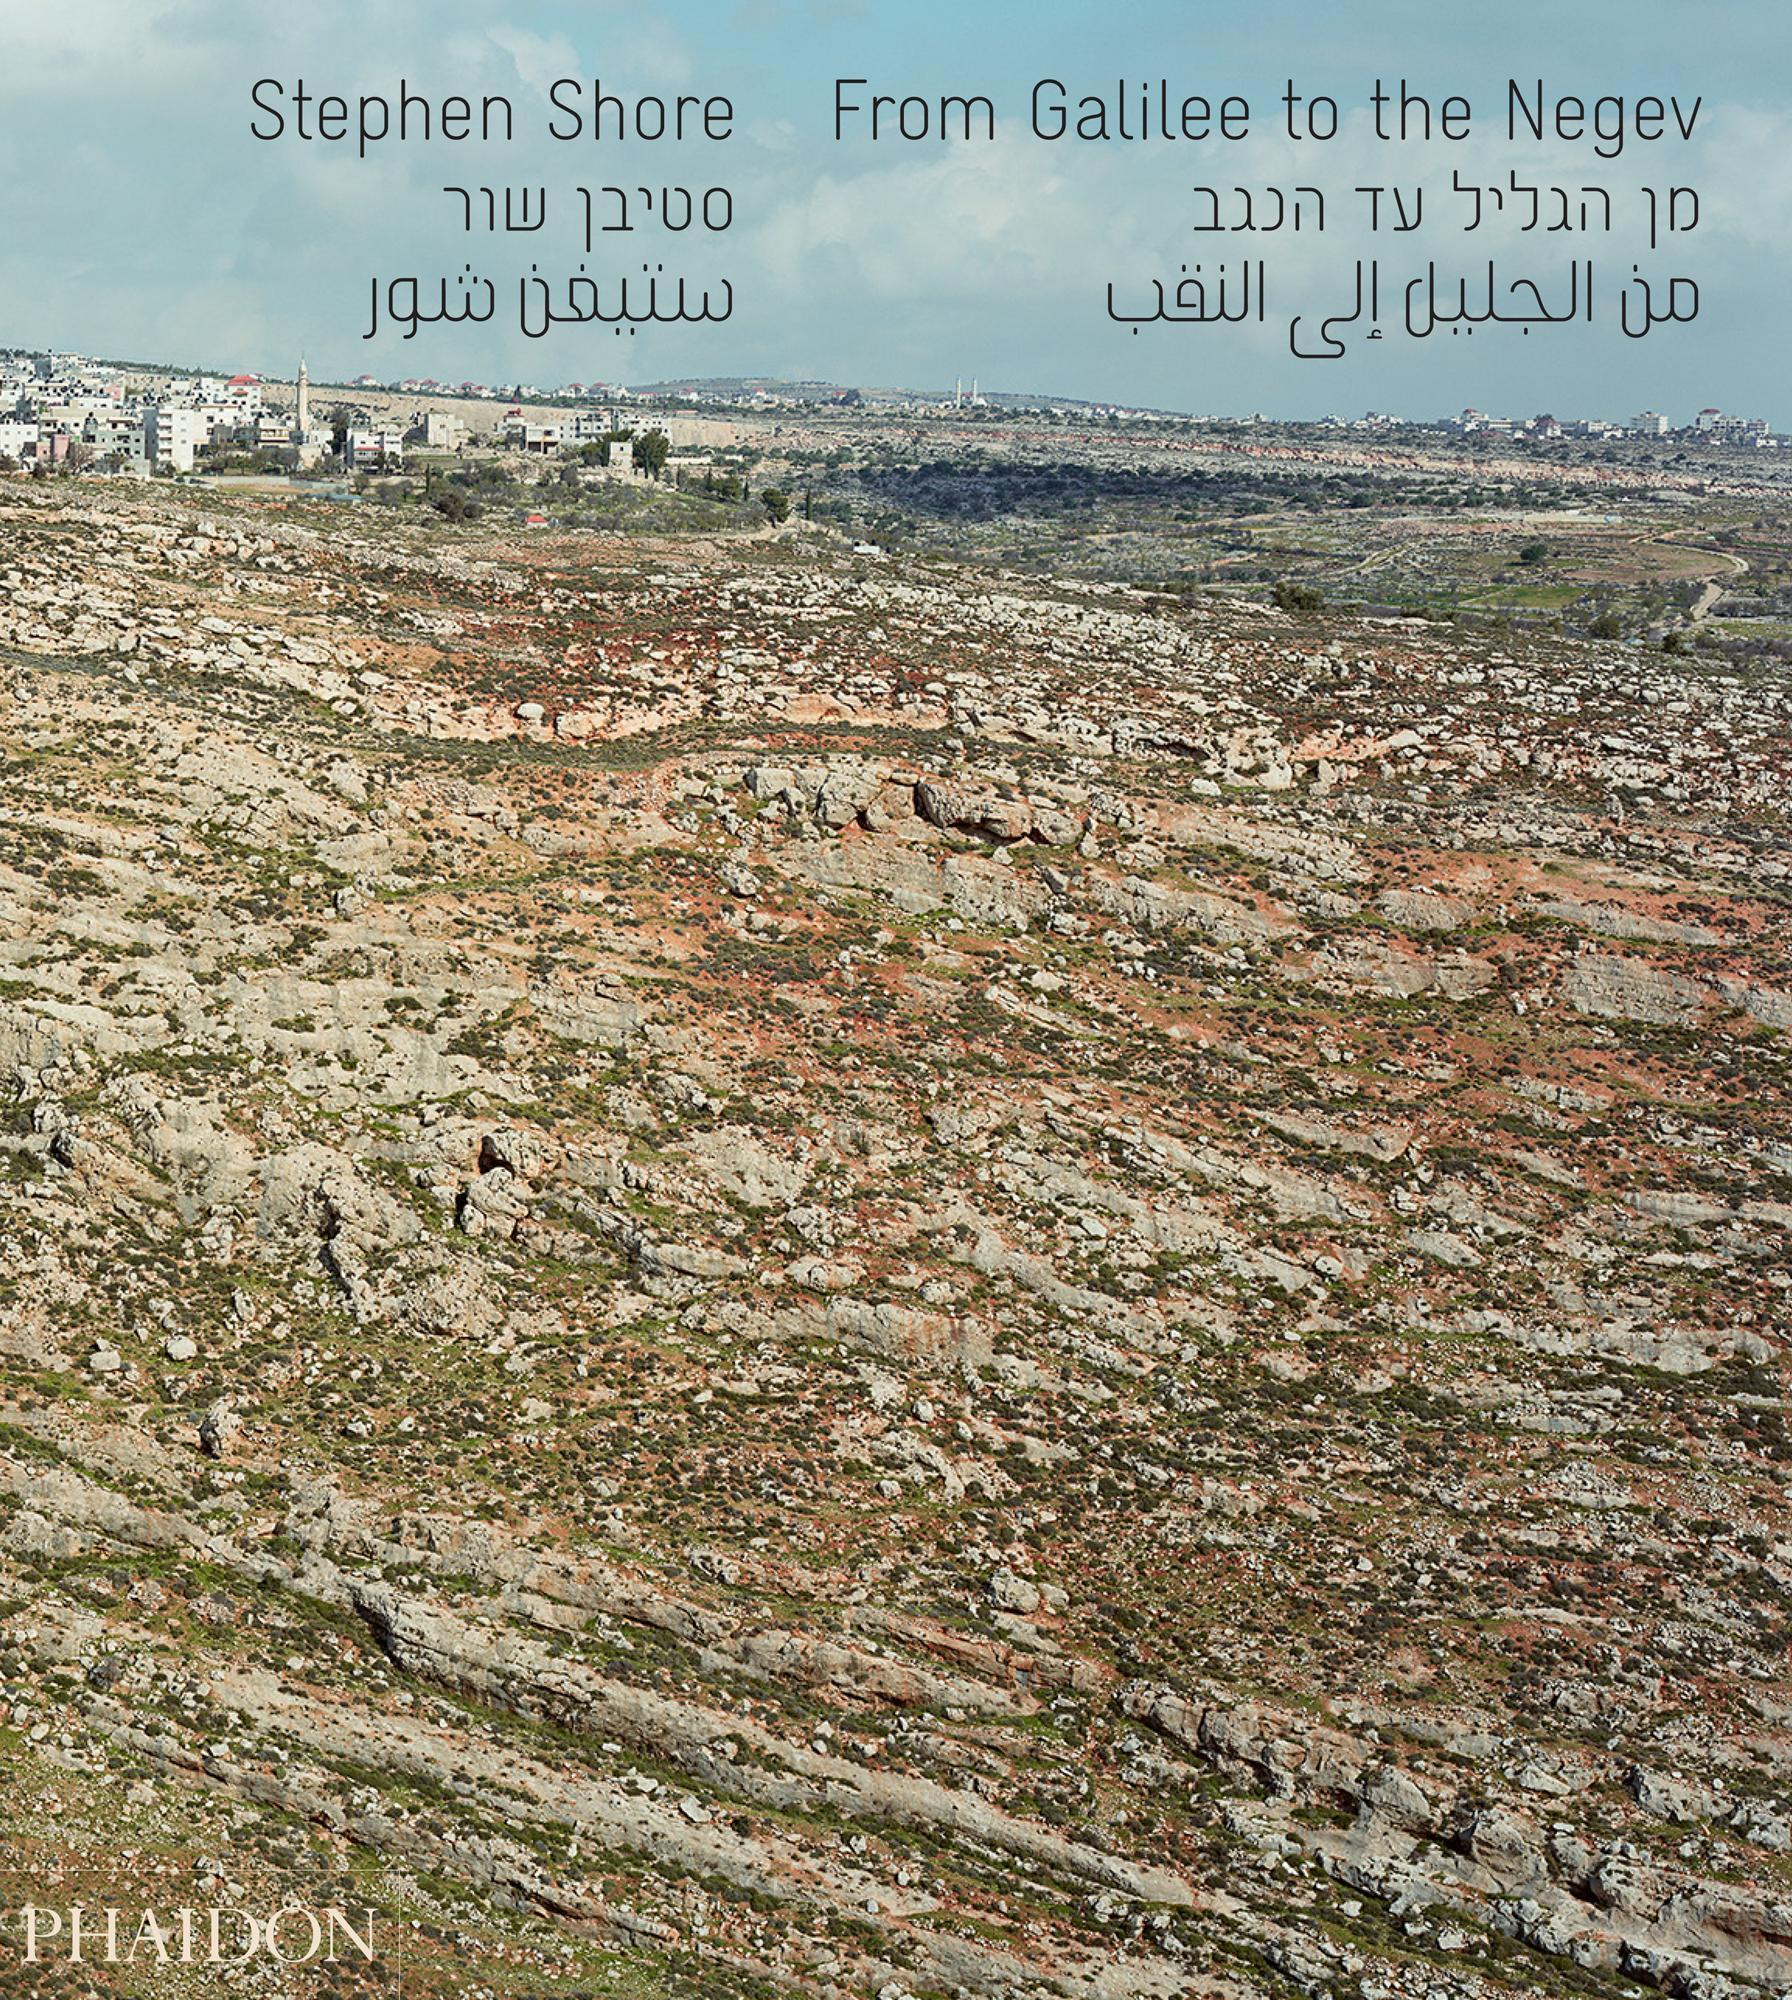 Stephen  Shore: From Galilee to the Negev Stephen Kramer Shore